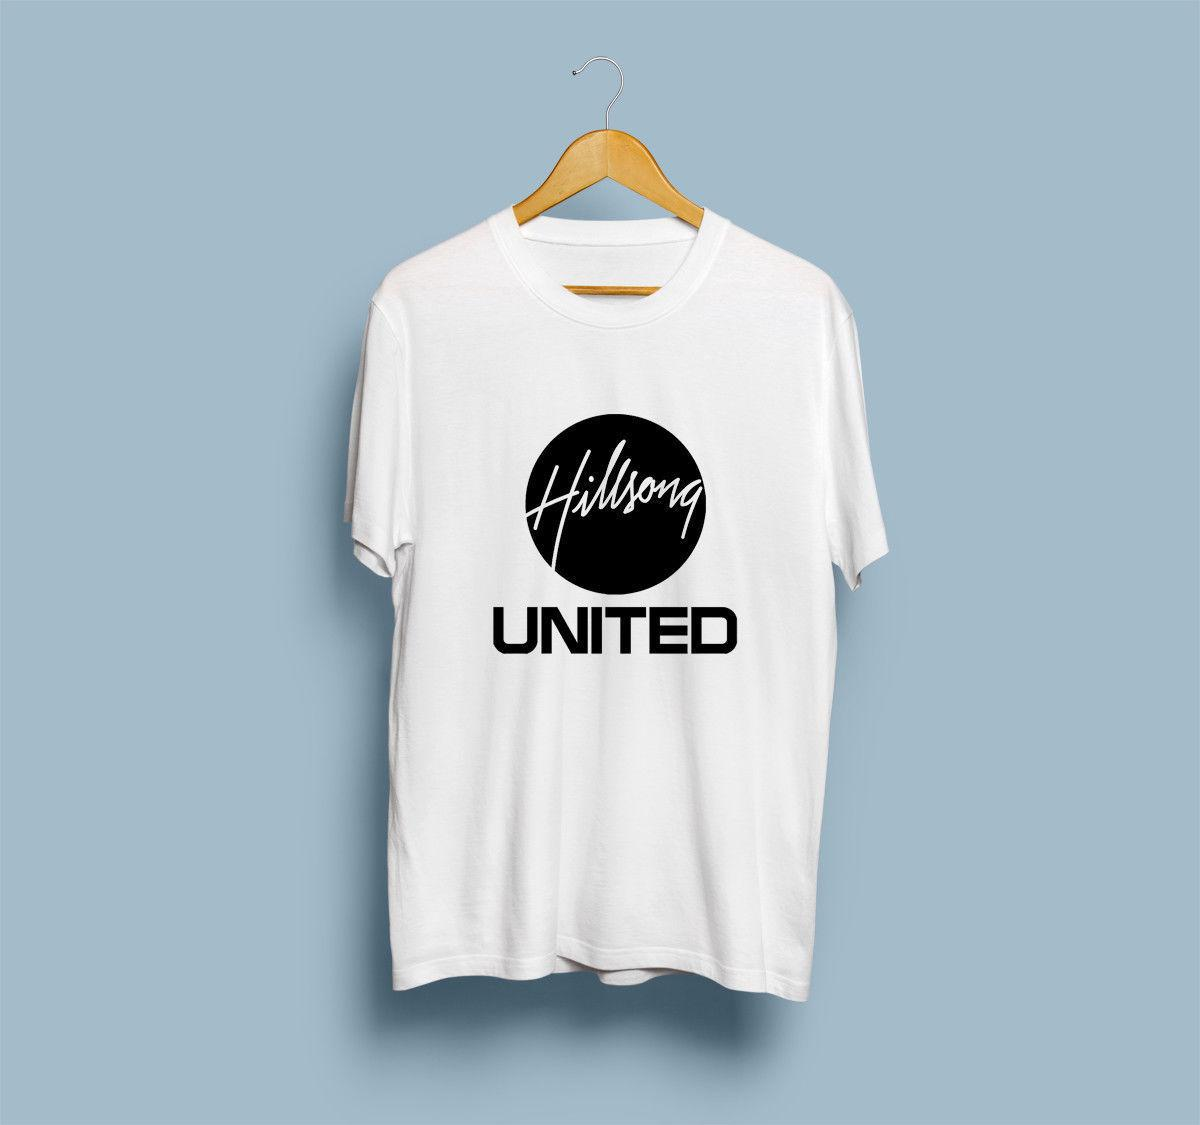 3e053ec3492 NEW Hillsong United 3 Worship Band T SHIRT S 5XL MAN WOMAN 2018 Male Short  Sleeve Top Tee Hip Hop Style Tops Purchase T Shirt Crazy Tee Shirts Online  From ...